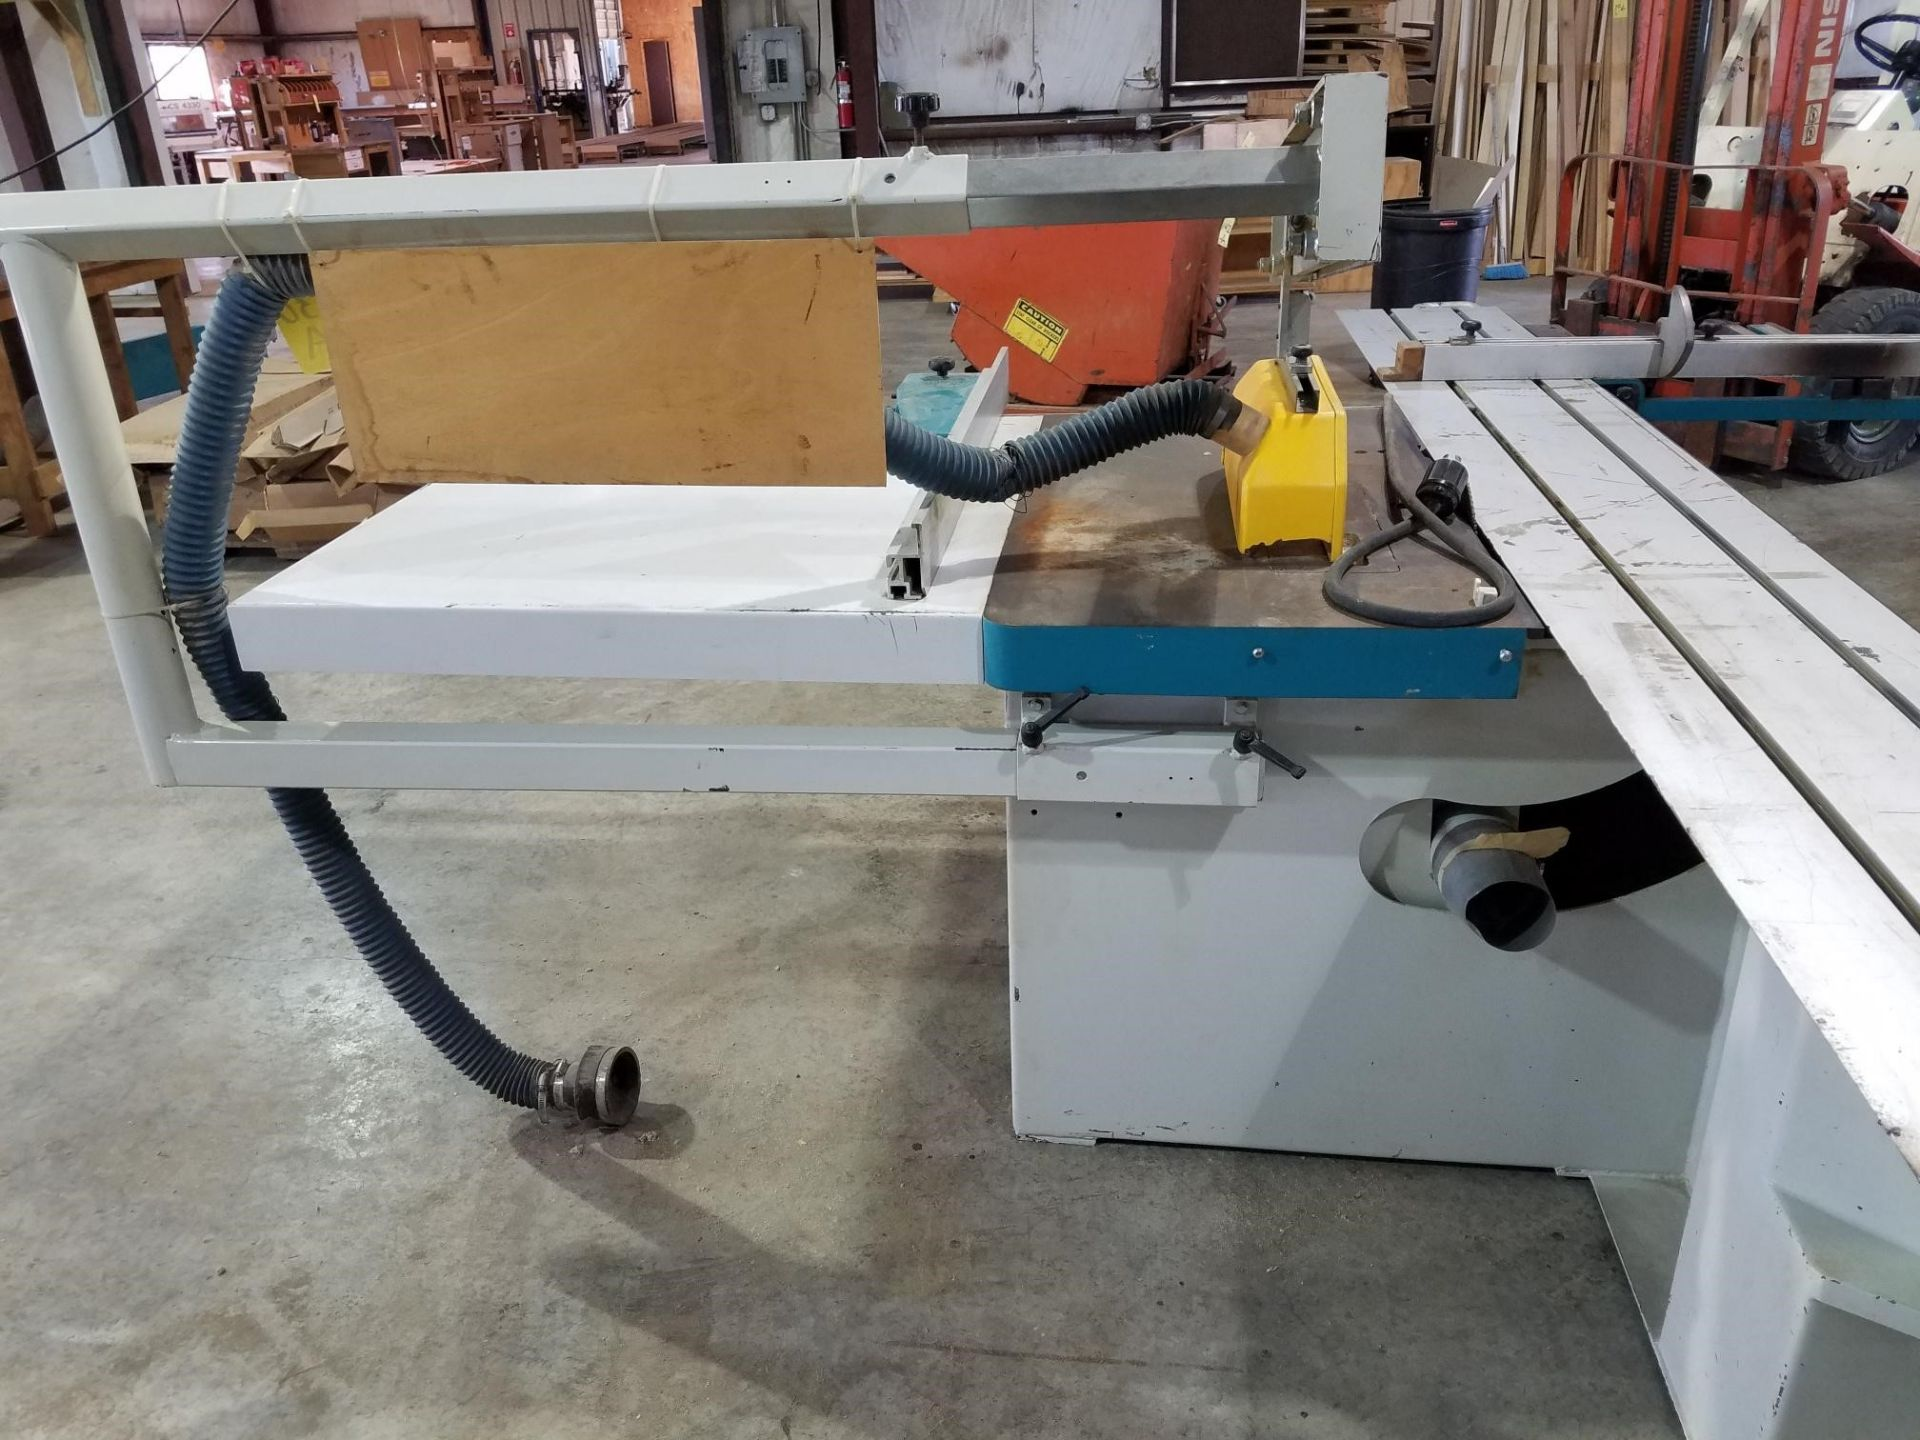 """Lot 130A - SLIDING TABLE PANEL SAW, GRIGGIO MDL. SC3200, new 2000, 10 HP motor, approx. 13"""" x 126"""" cutting"""